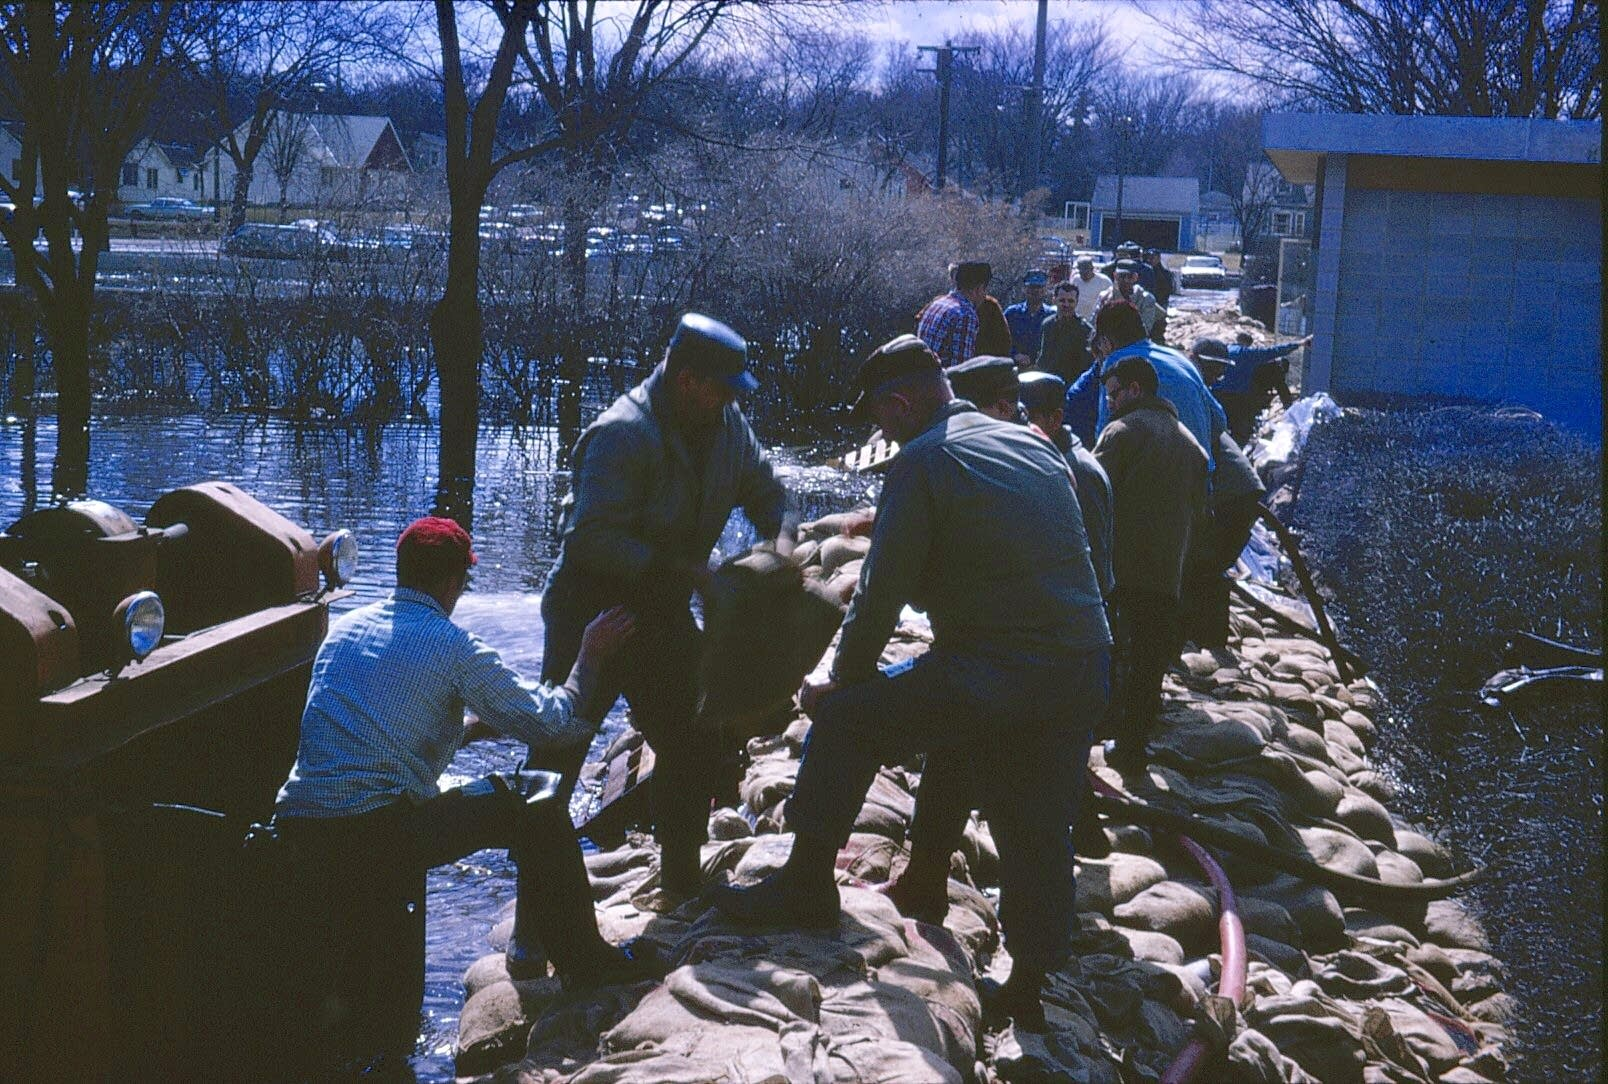 Men stack sandbags on a wall.